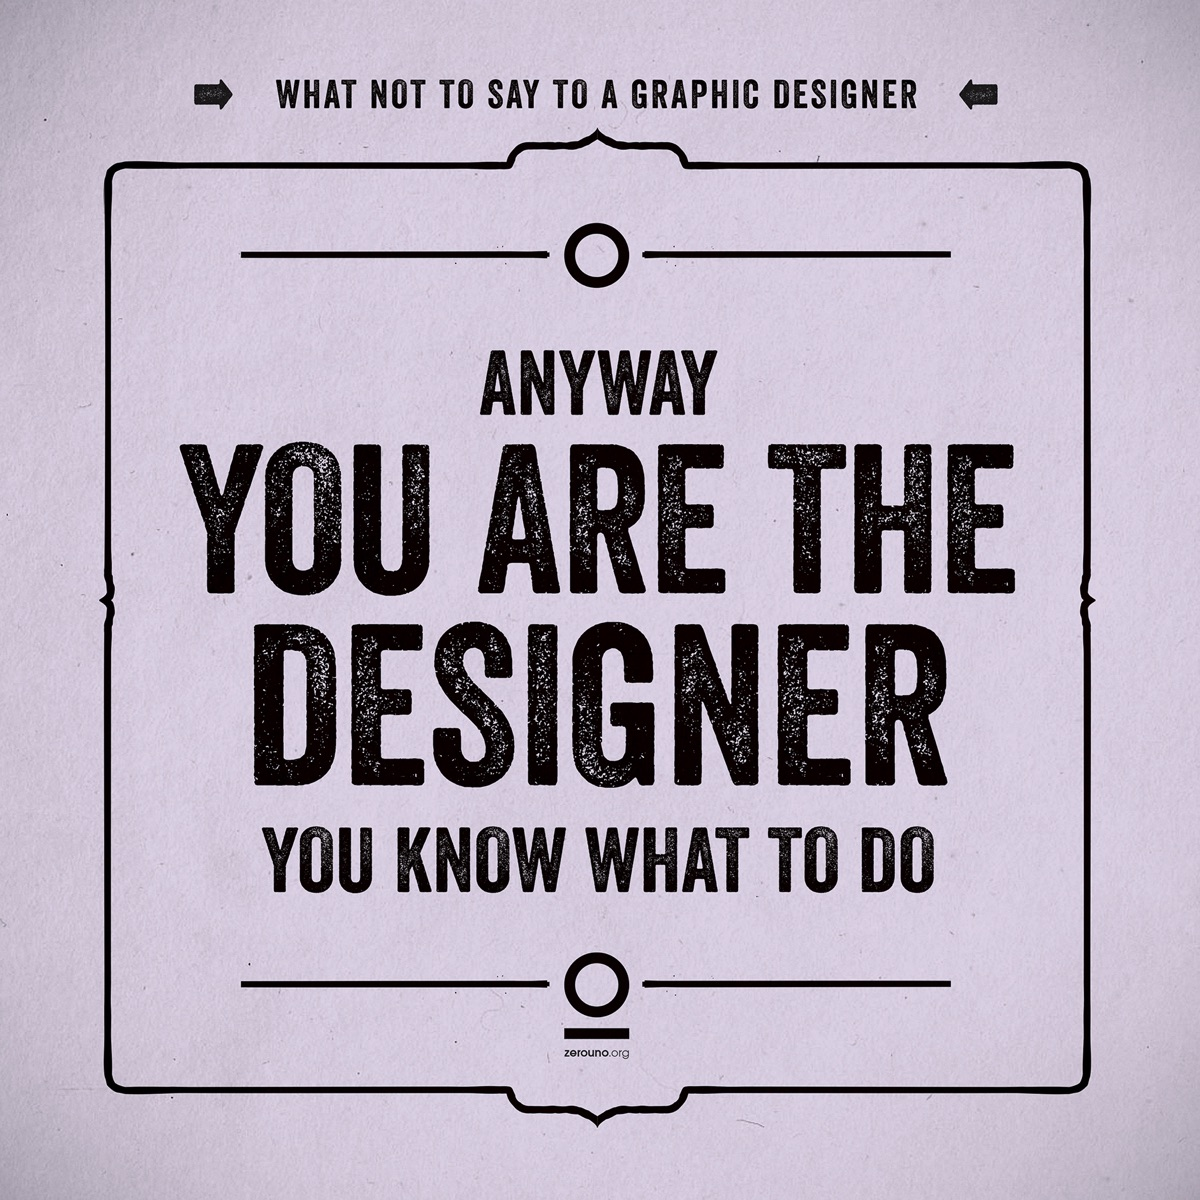 what not to say to a graphic designer2